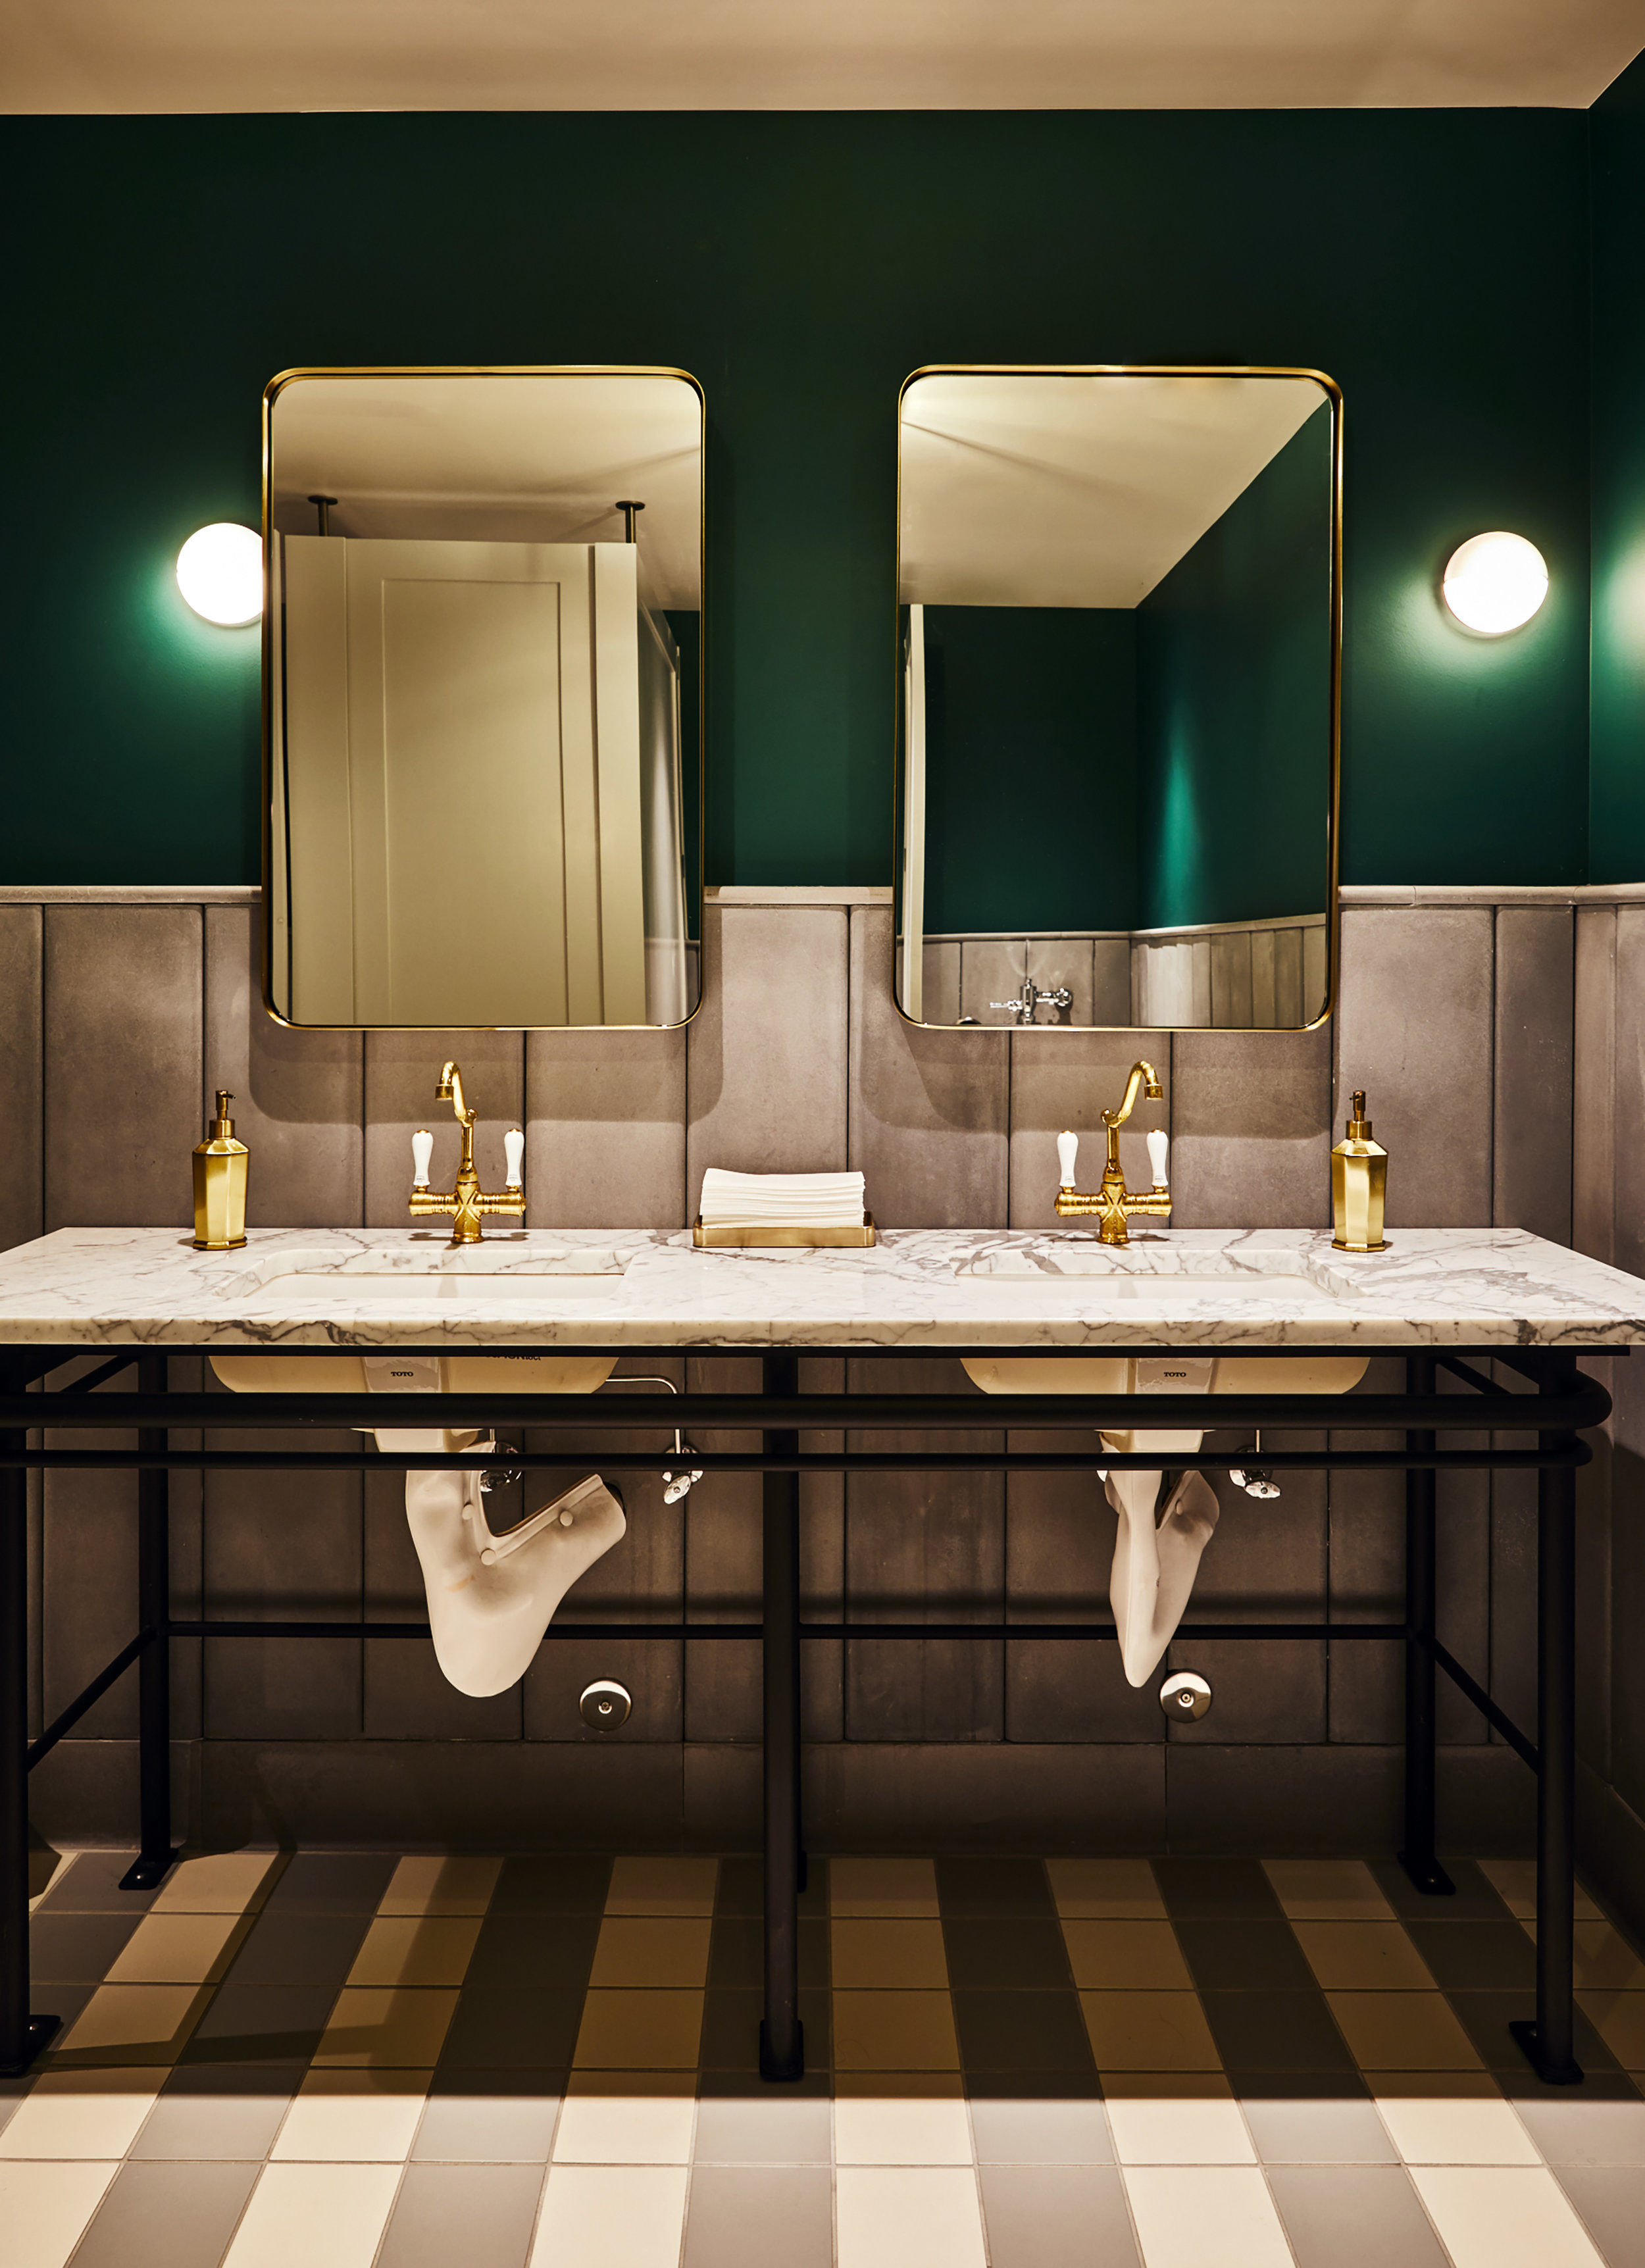 Woodlark Lobby | Smith Hanes. Bathrooms